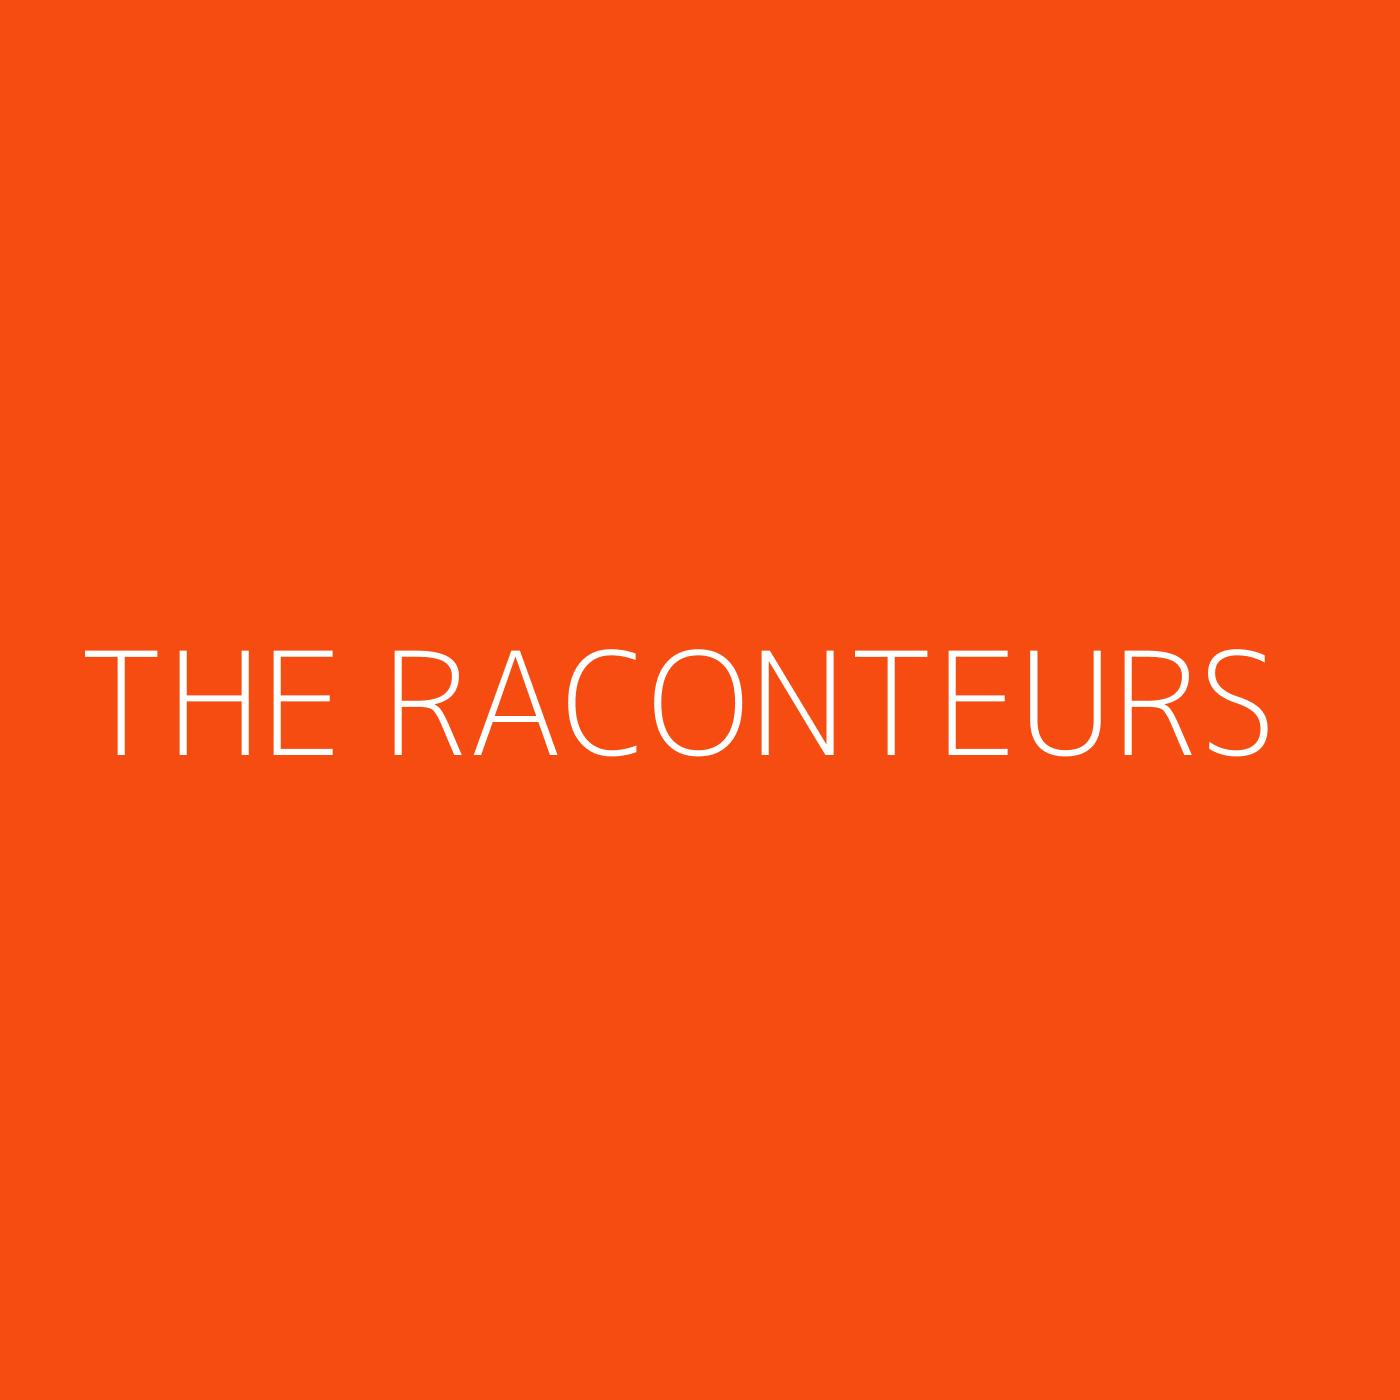 The Raconteurs Playlist Artwork